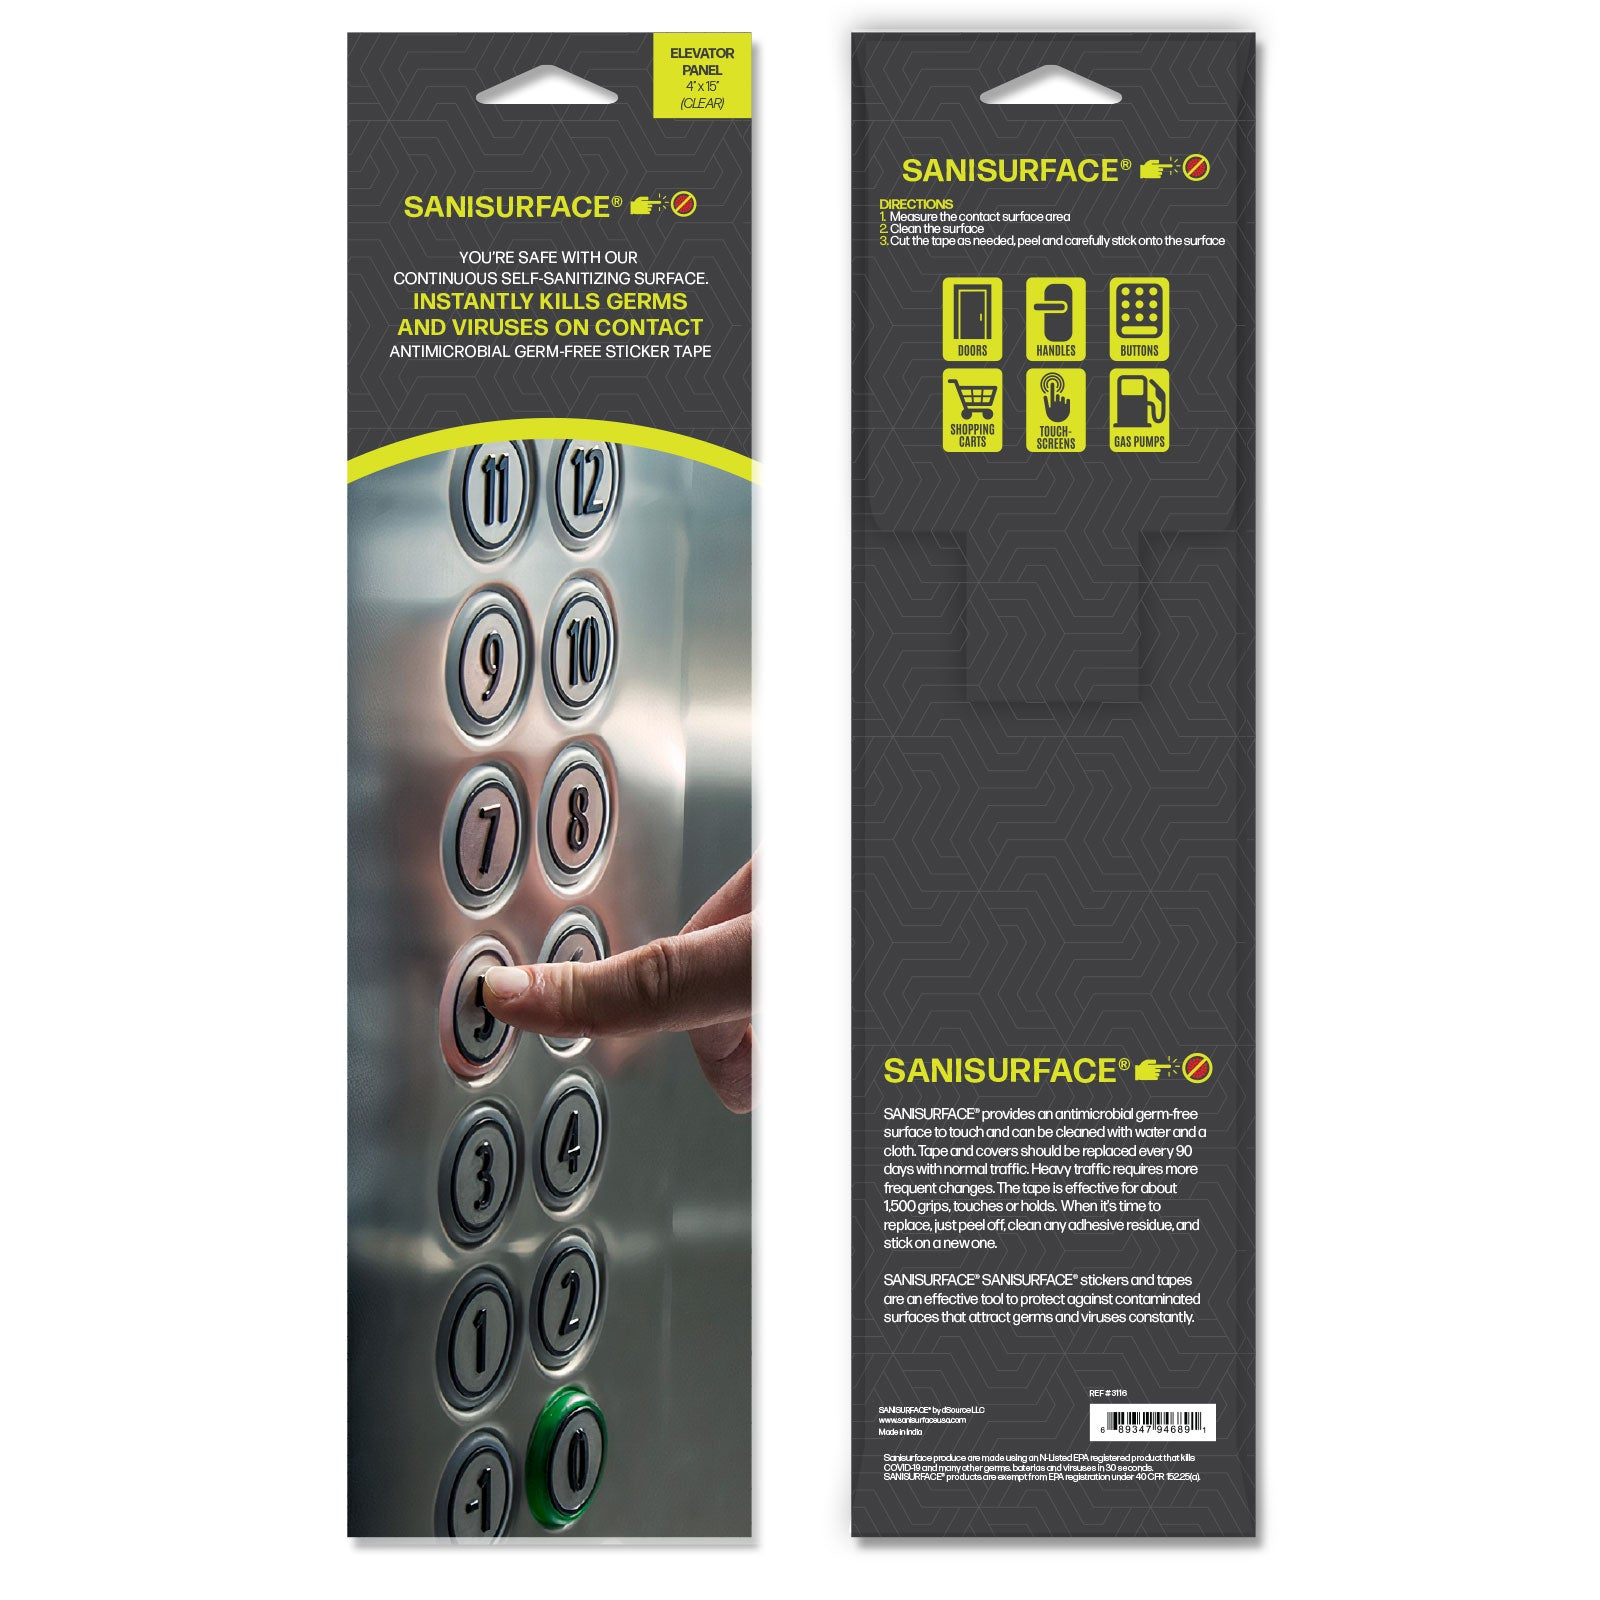 3243 SANISURFACE Elevator Buttons (Clear) - Includes 450 Stickers